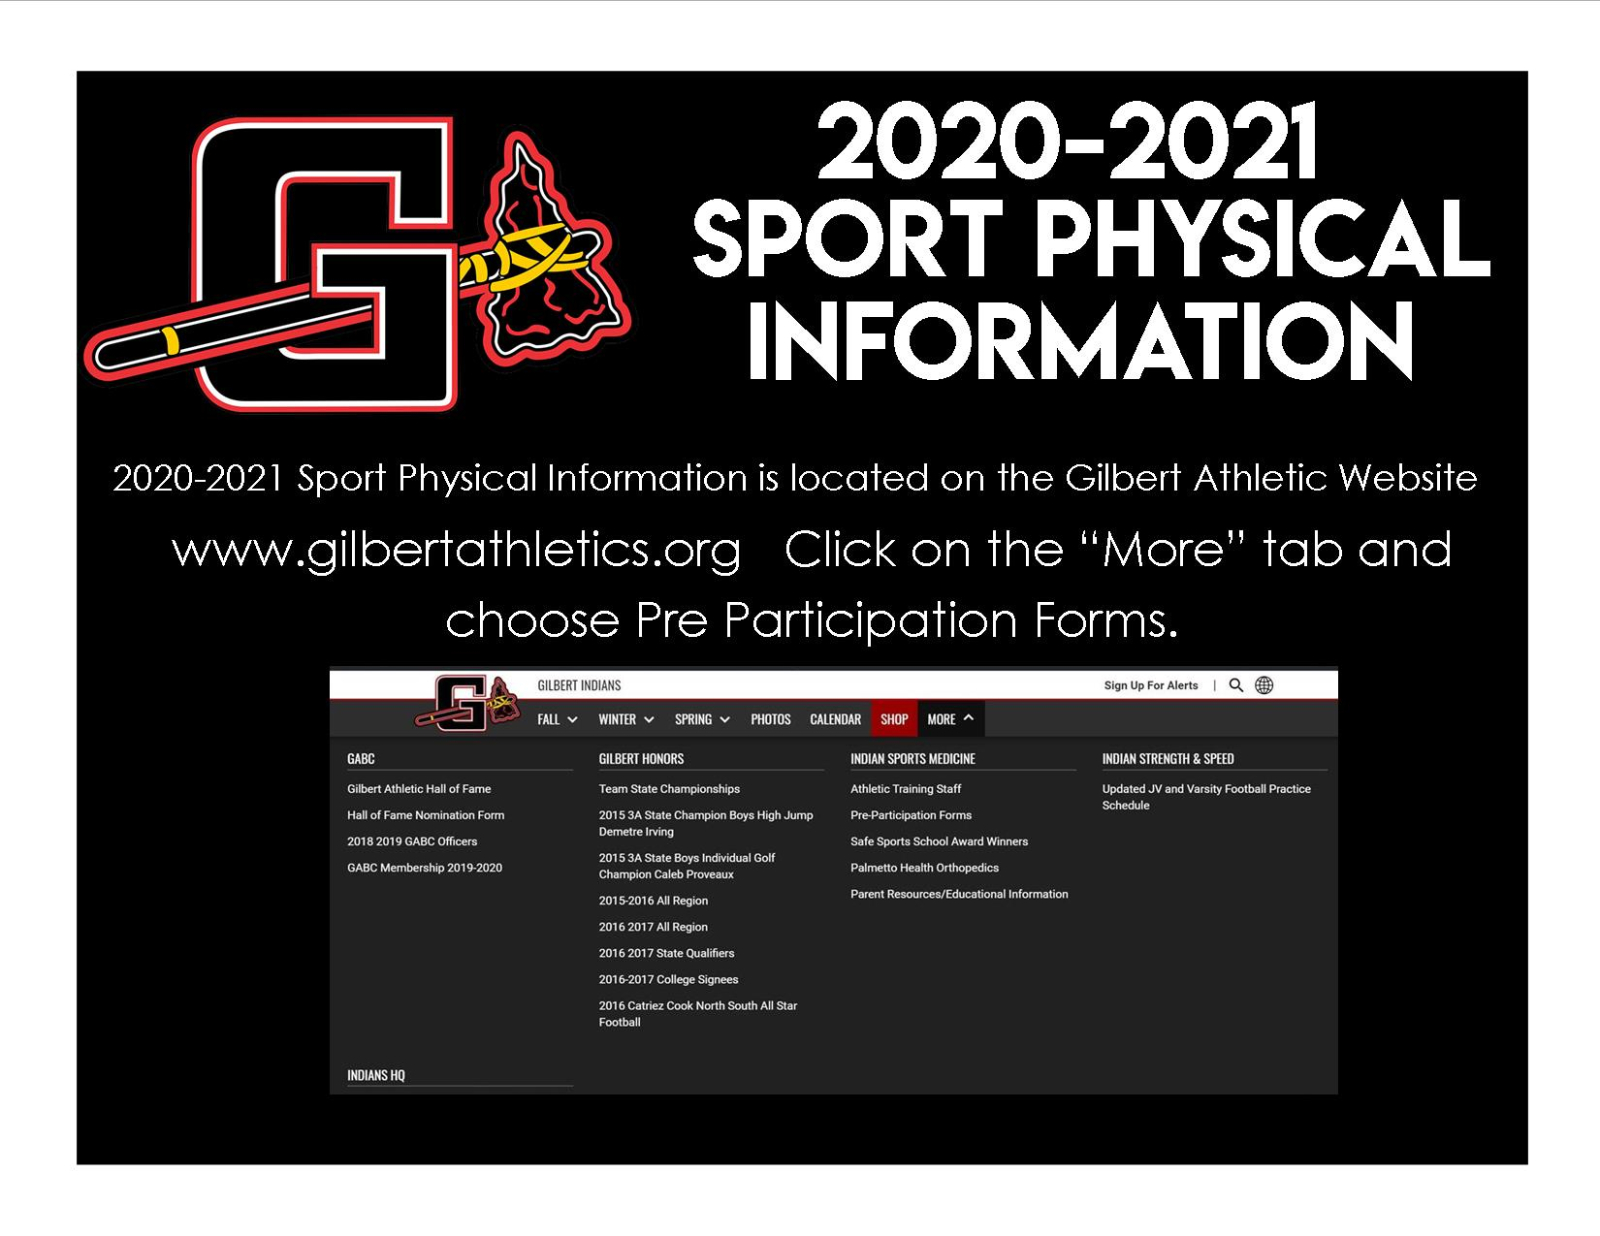 2020-2021 Sport Physical Information